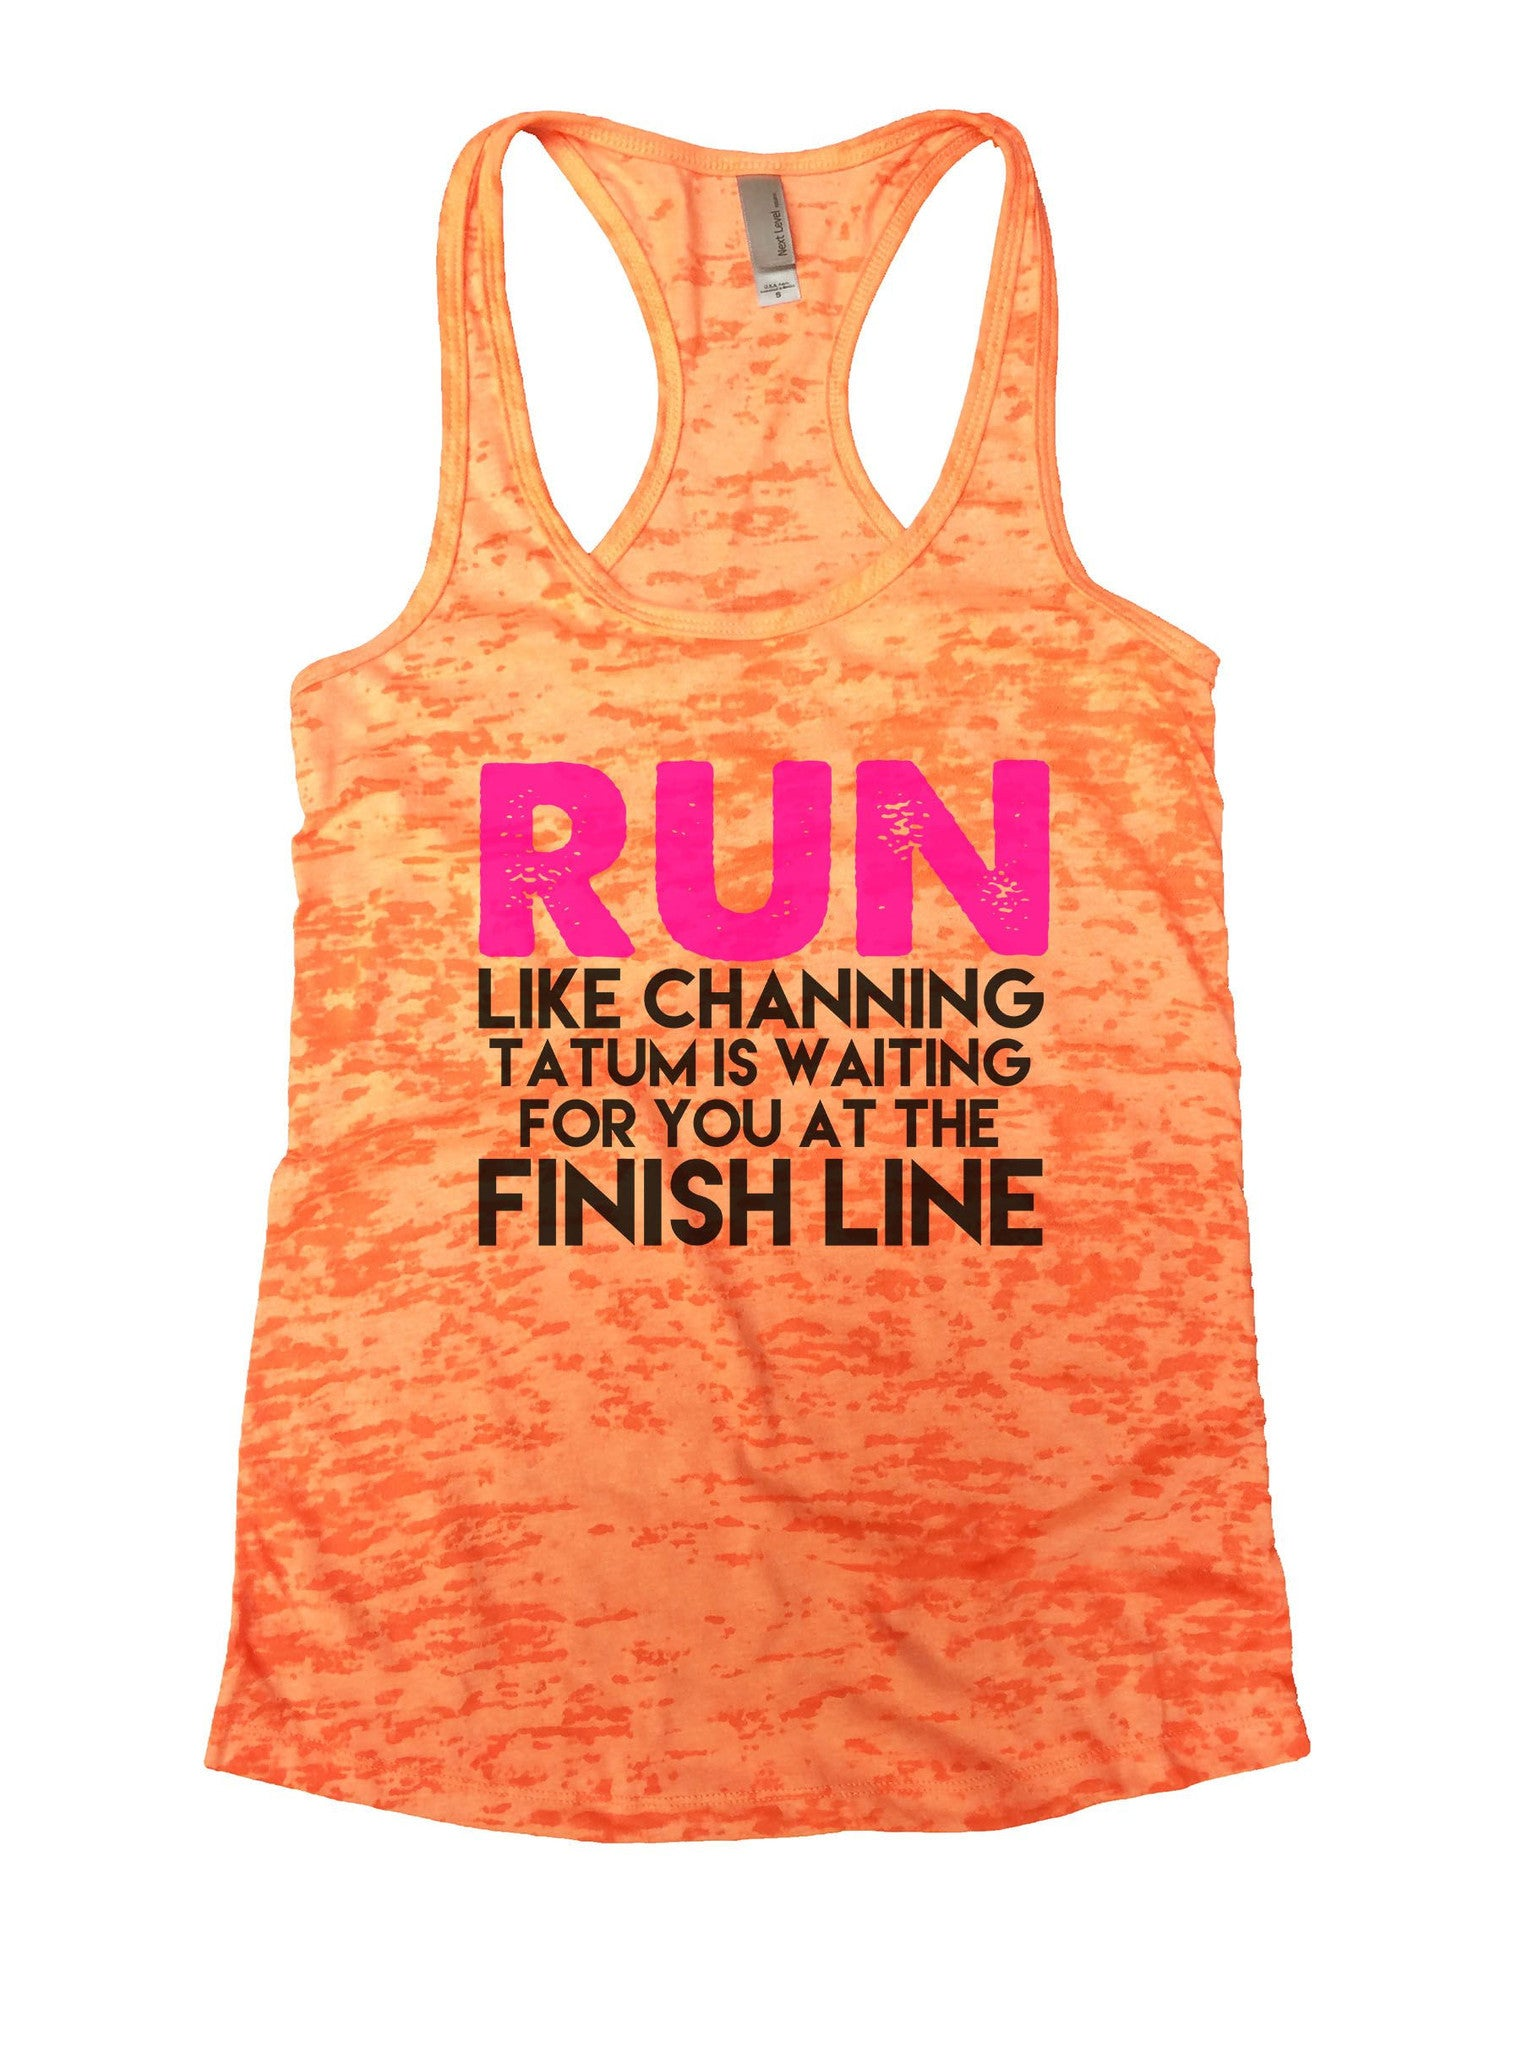 Run Like Channing Tatum Is Waiting For You At The Finish Line Burnout Tank Top By BurnoutTankTops.com - 872 - Funny Shirts Tank Tops Burnouts and Triblends  - 3